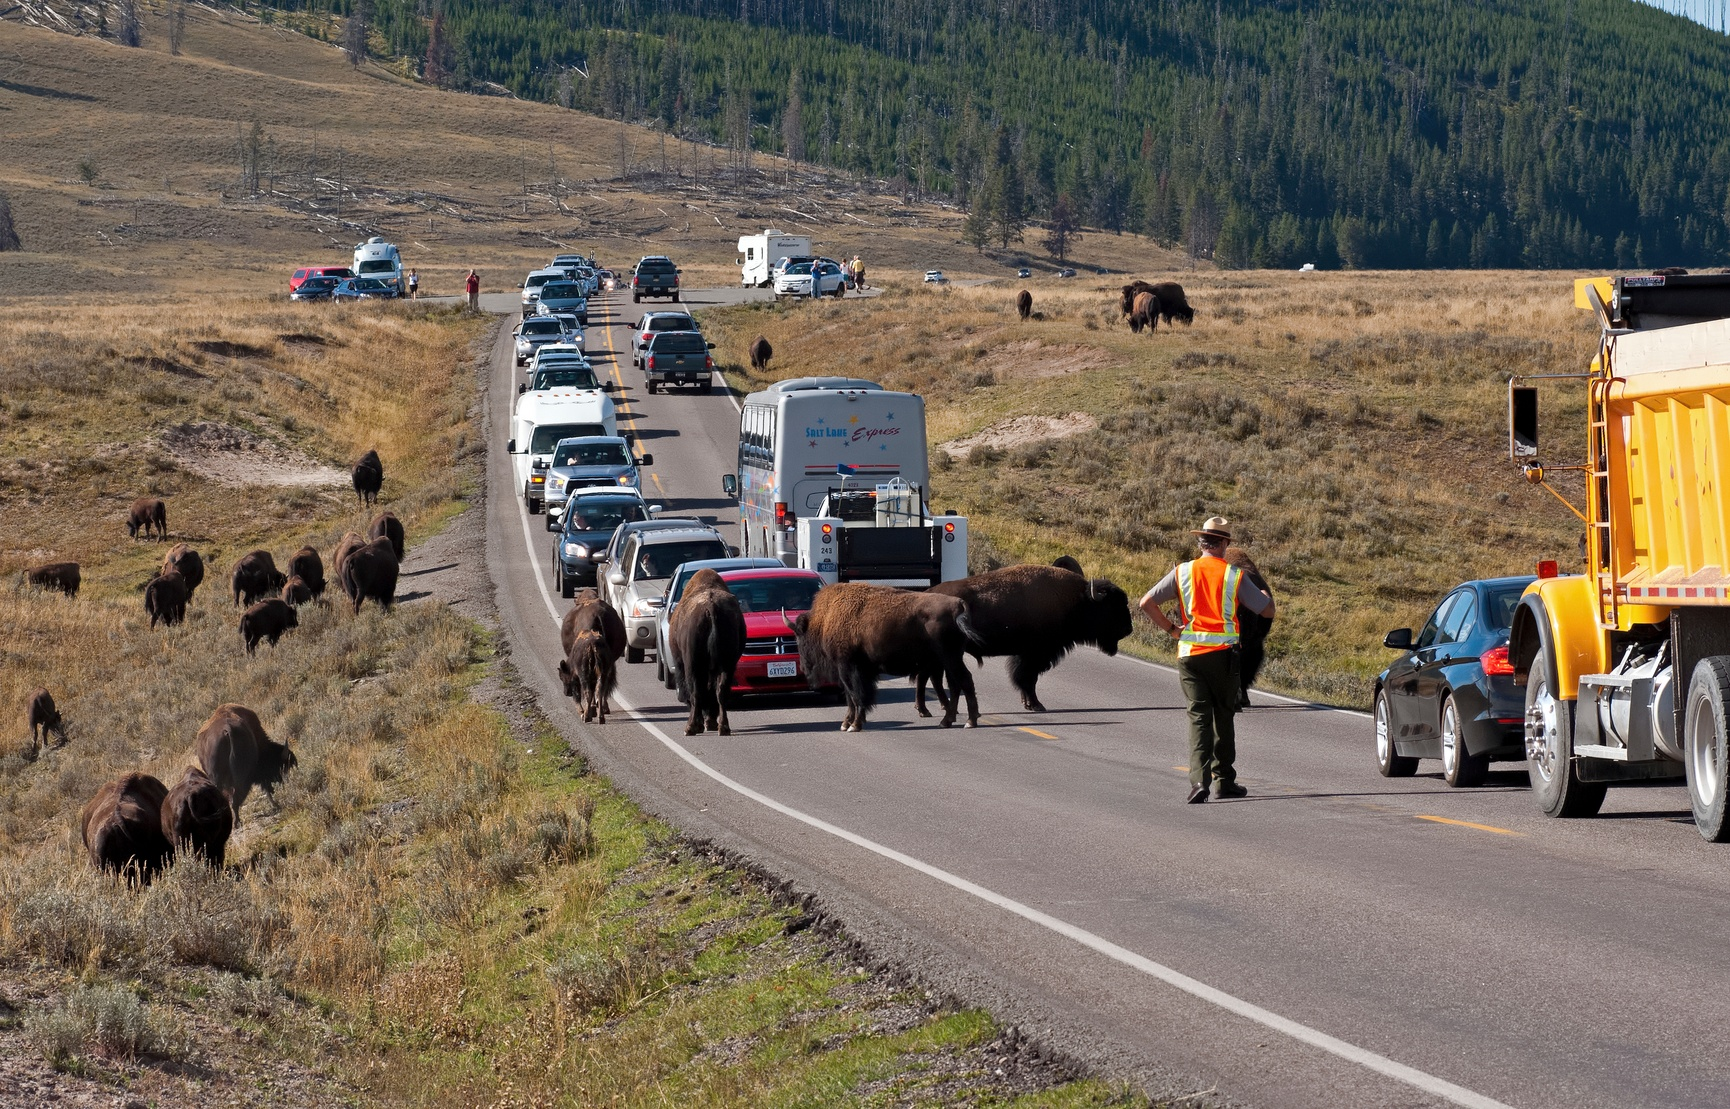 Getting to Yellowstone National Park